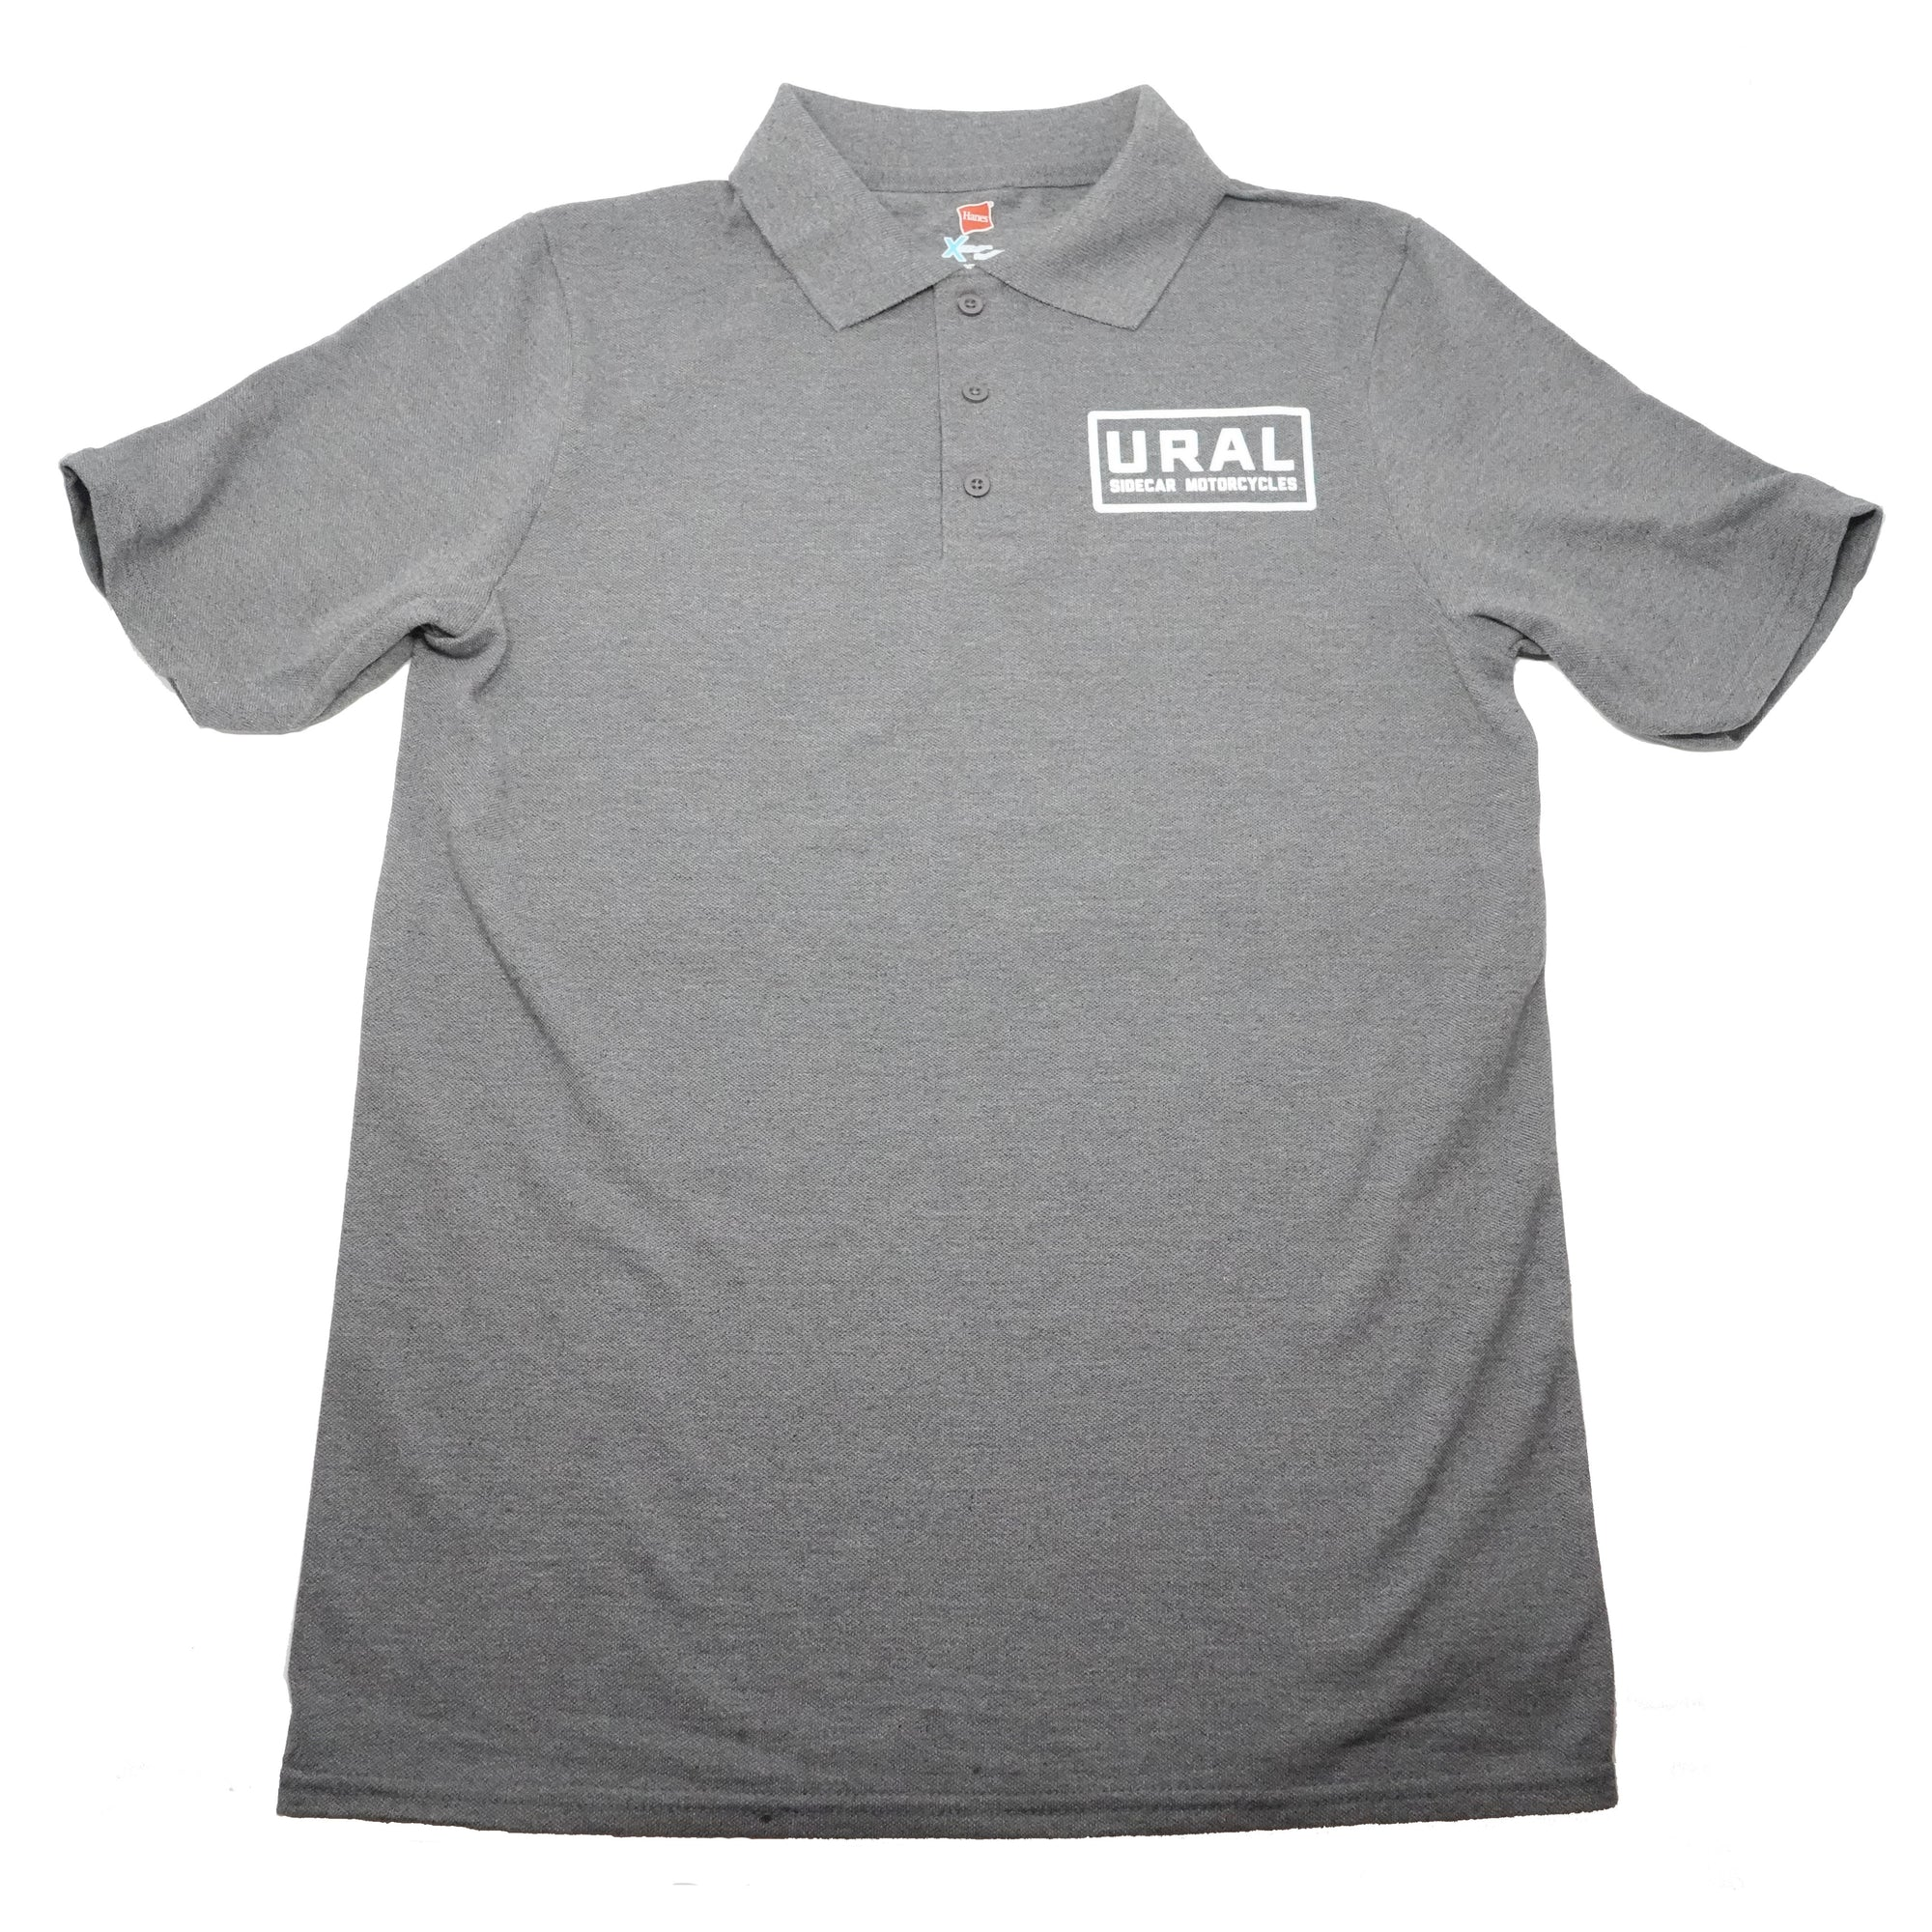 URAL Text Badge Polo Mens